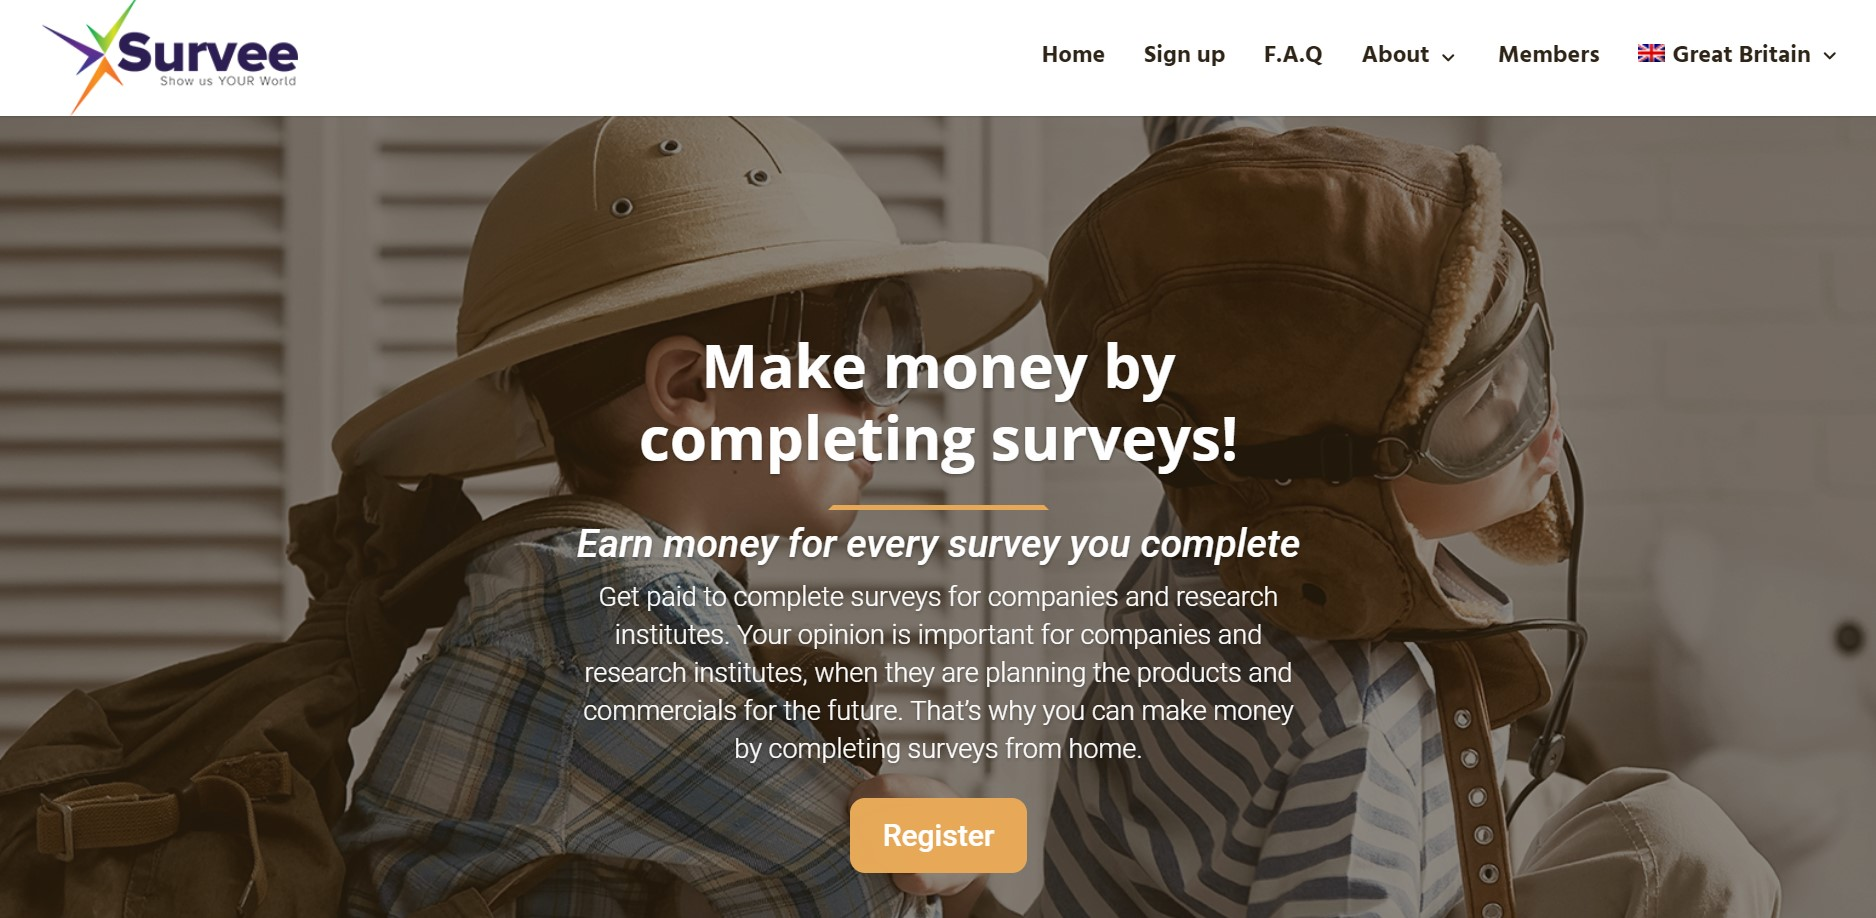 Earn money by completing online surveys from home | Survee